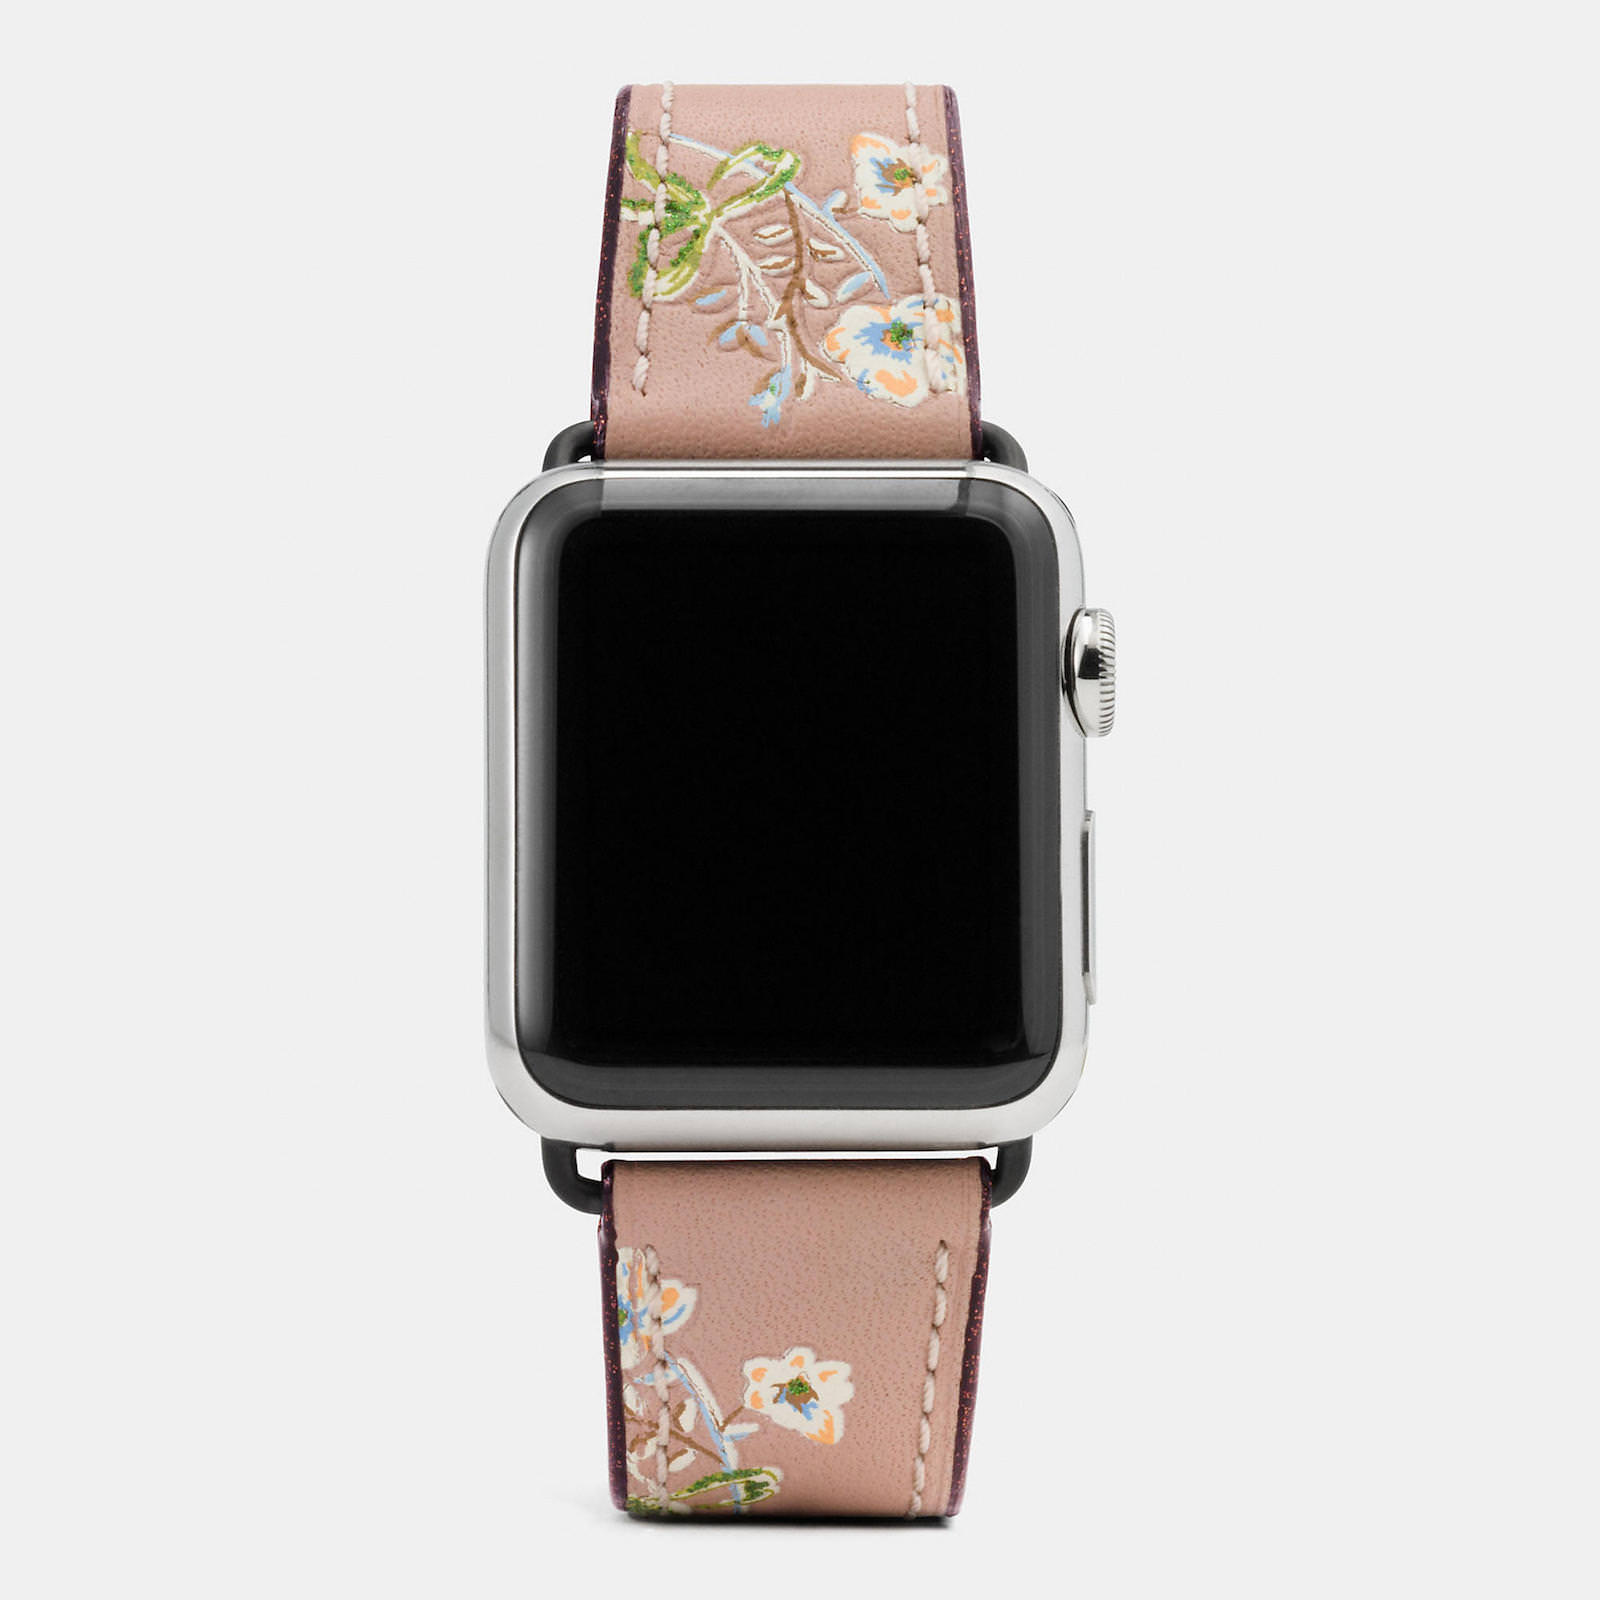 Apple-Watch-Coach-Band-Autumn-Season-6.jpeg